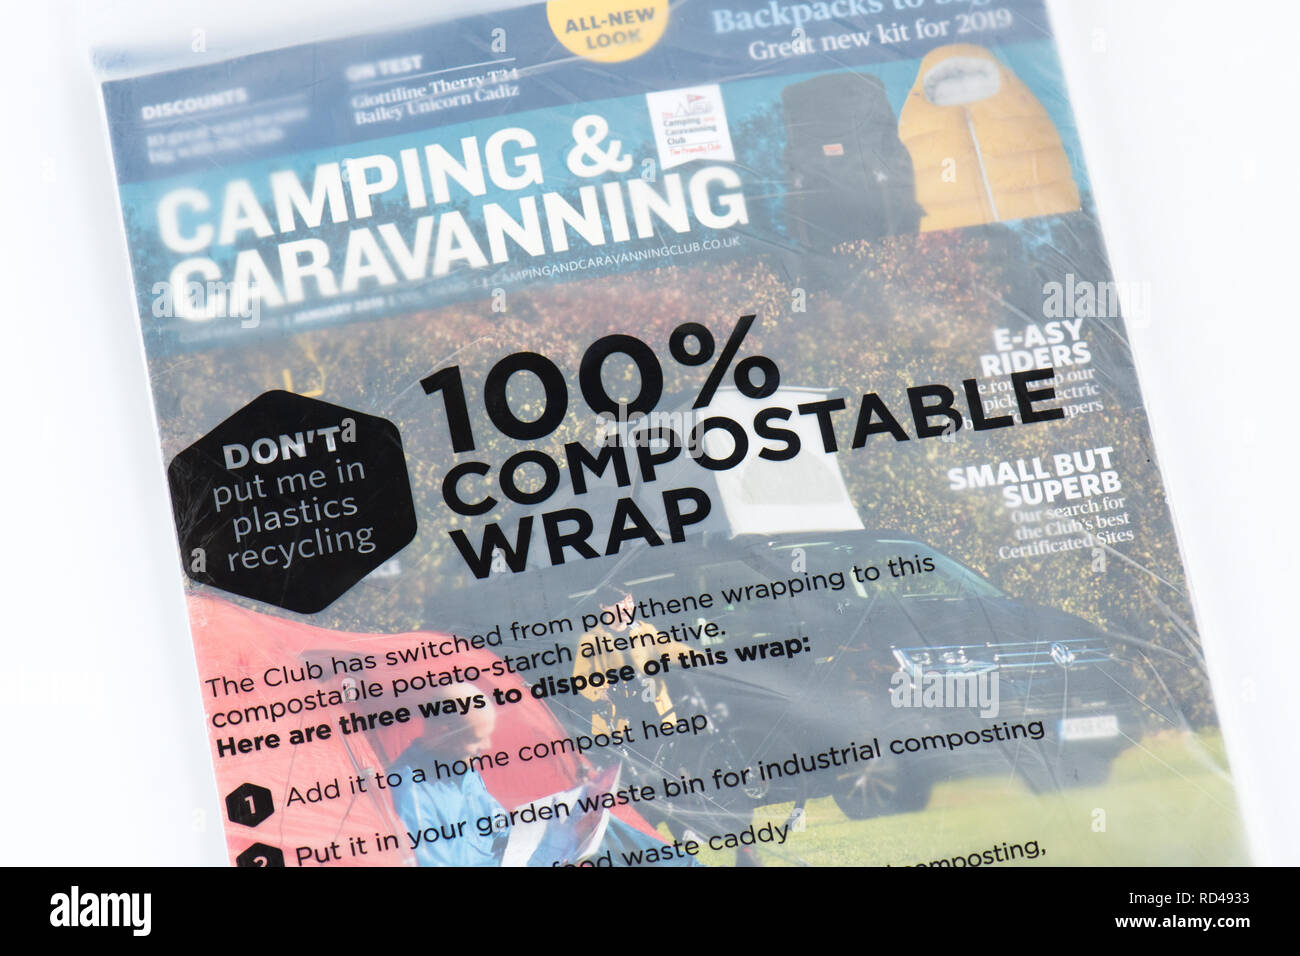 compostable wrap made from potato-starch wrapped around magazine - Stock Image